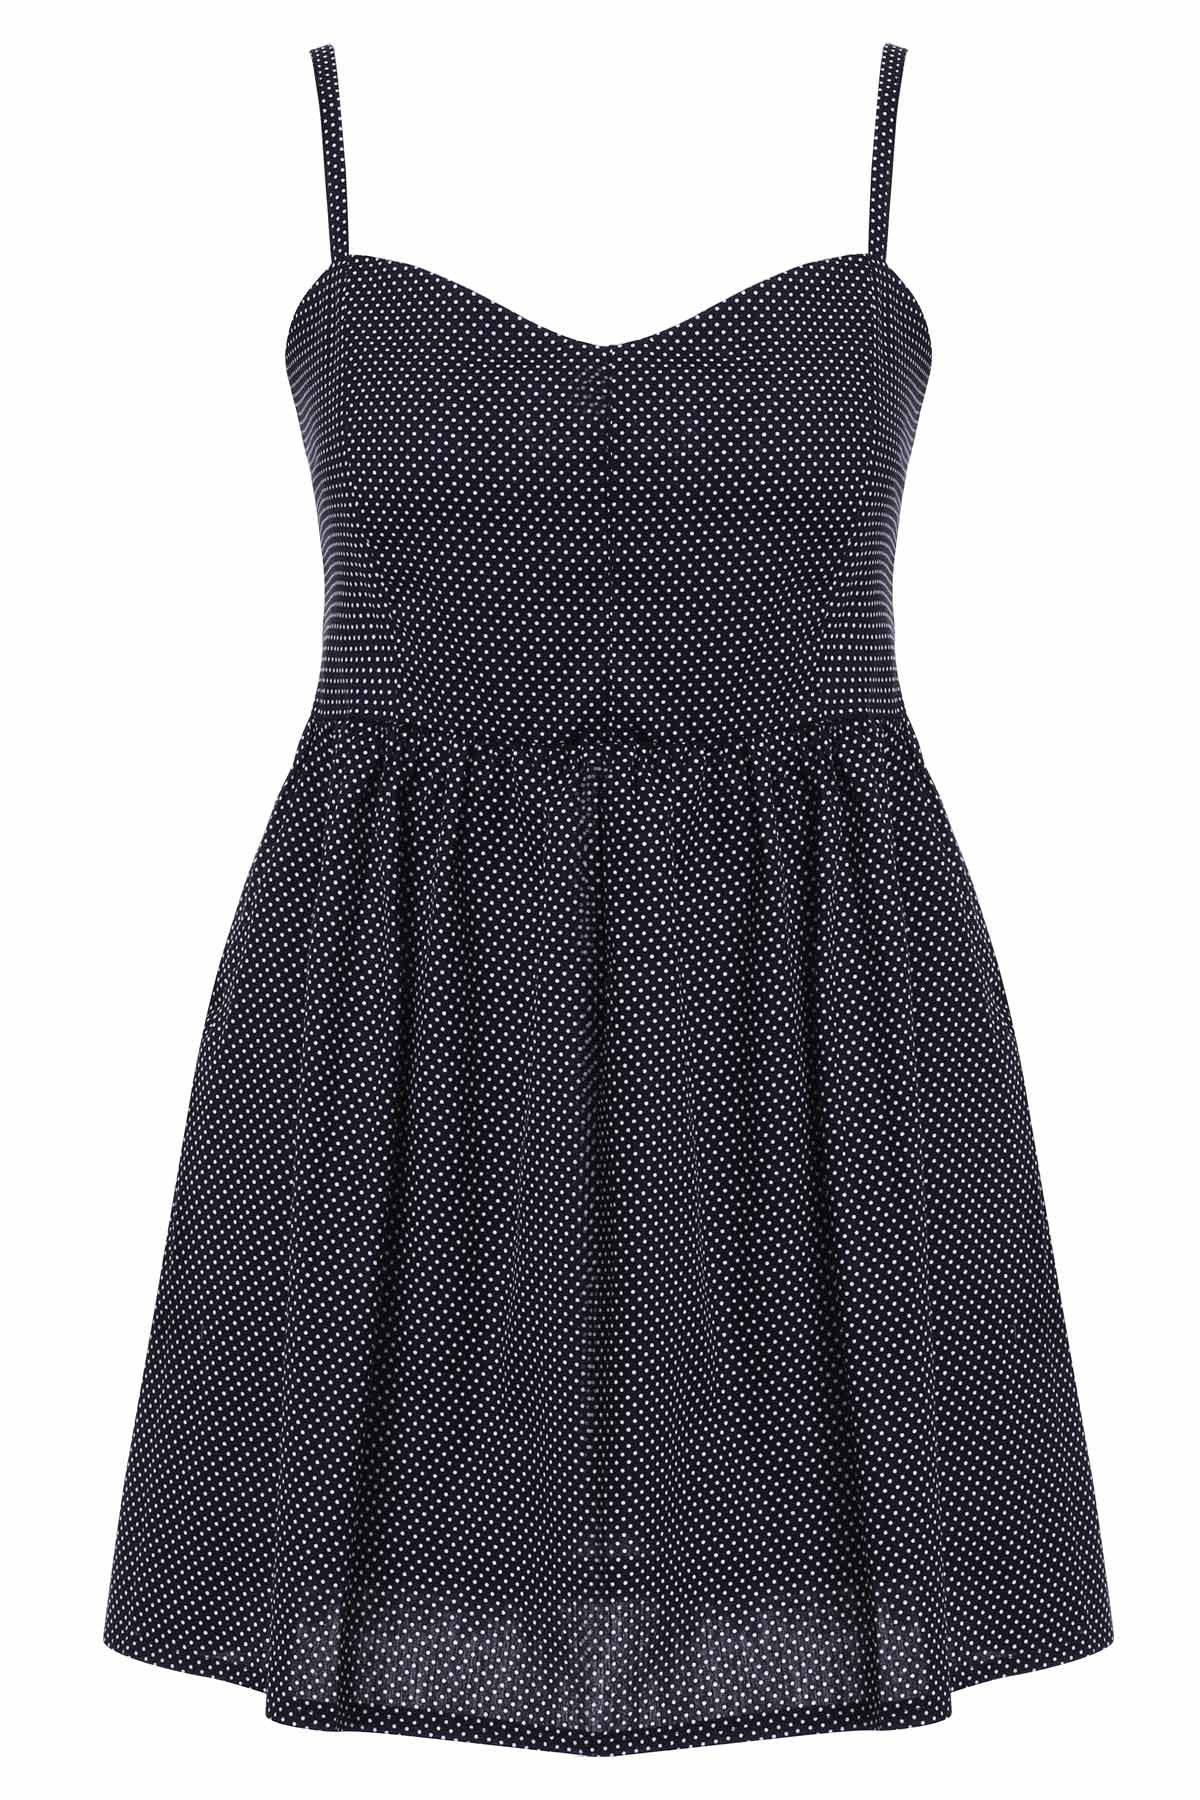 Chic Strappy Women's Sundress - BLACK M